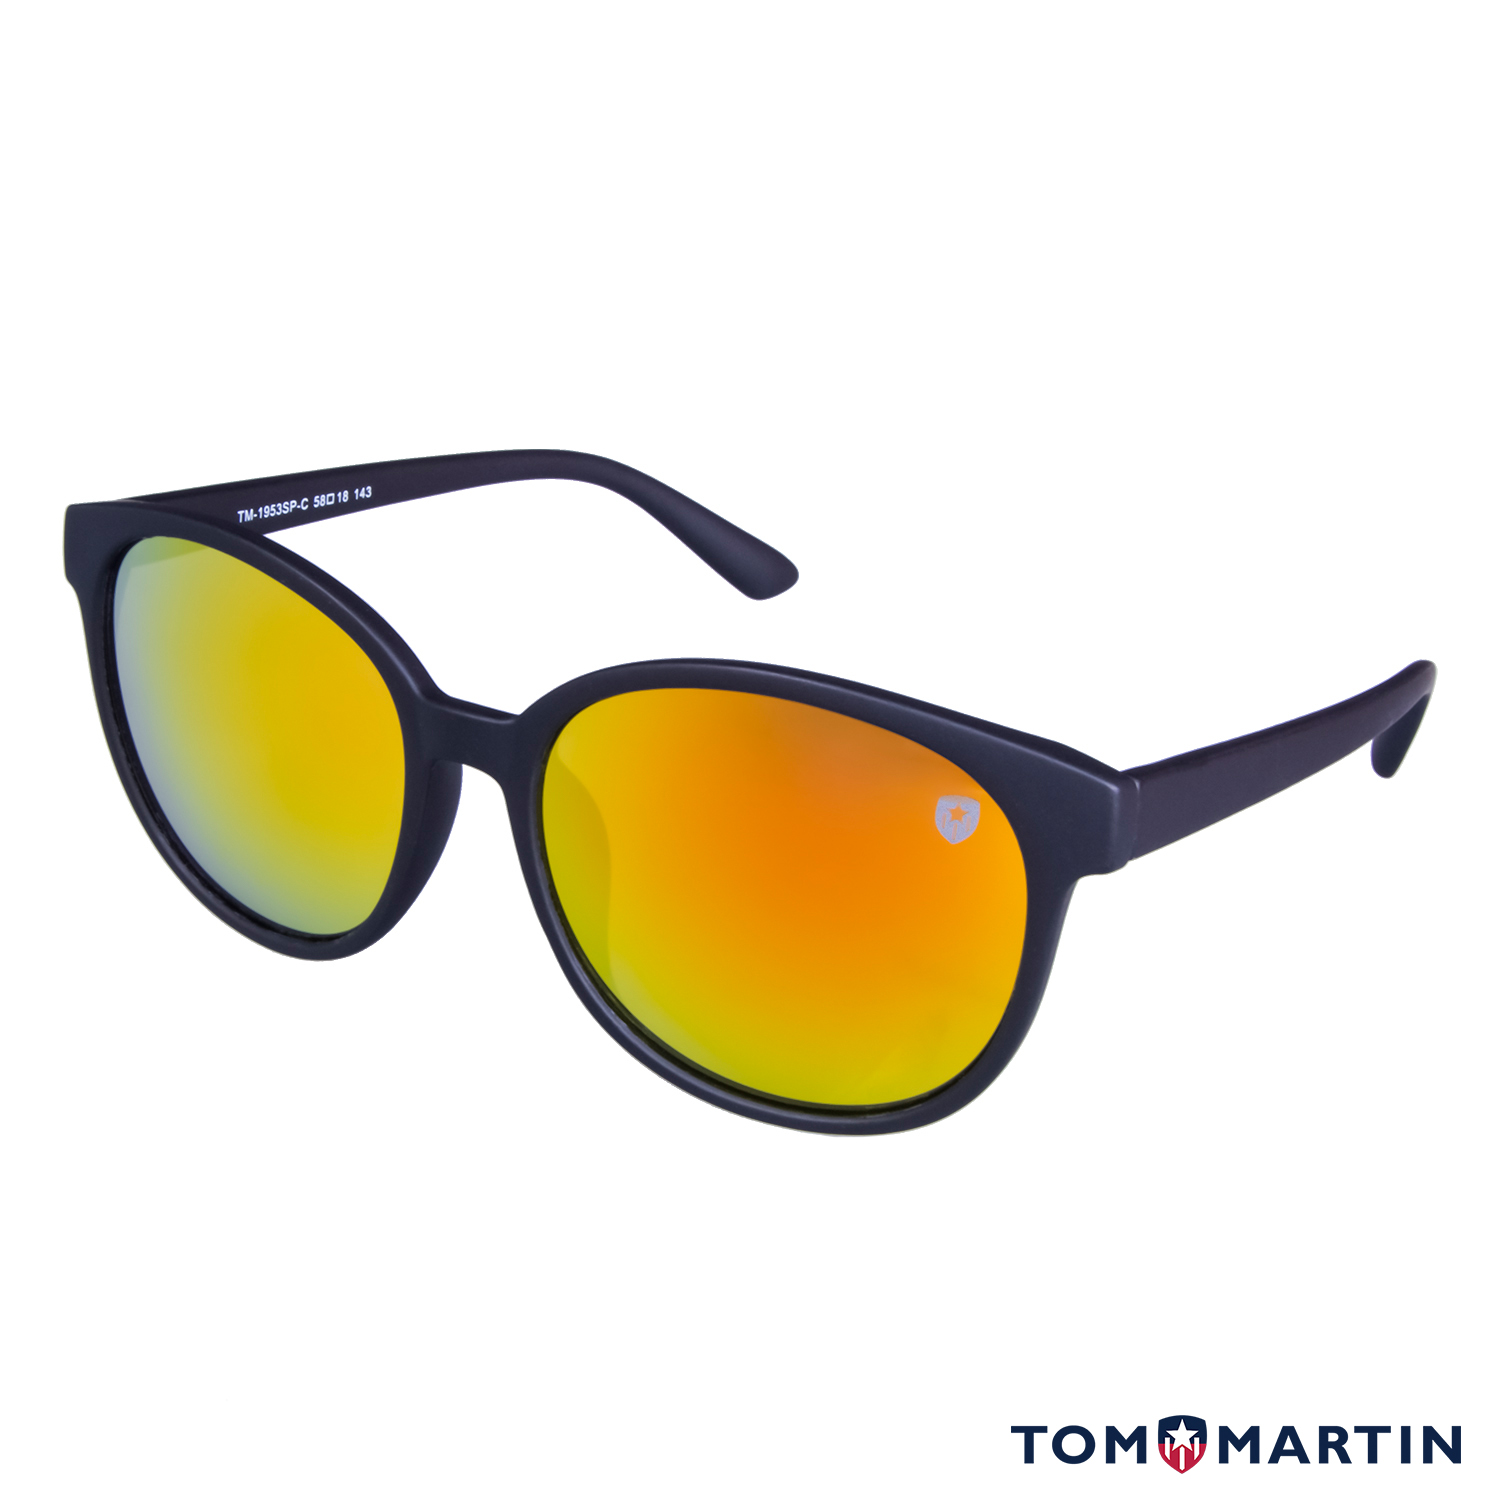 a6ce41efbd Buy Vienna - Mirrored Yellow Sunglasses for Women - Tom Martin